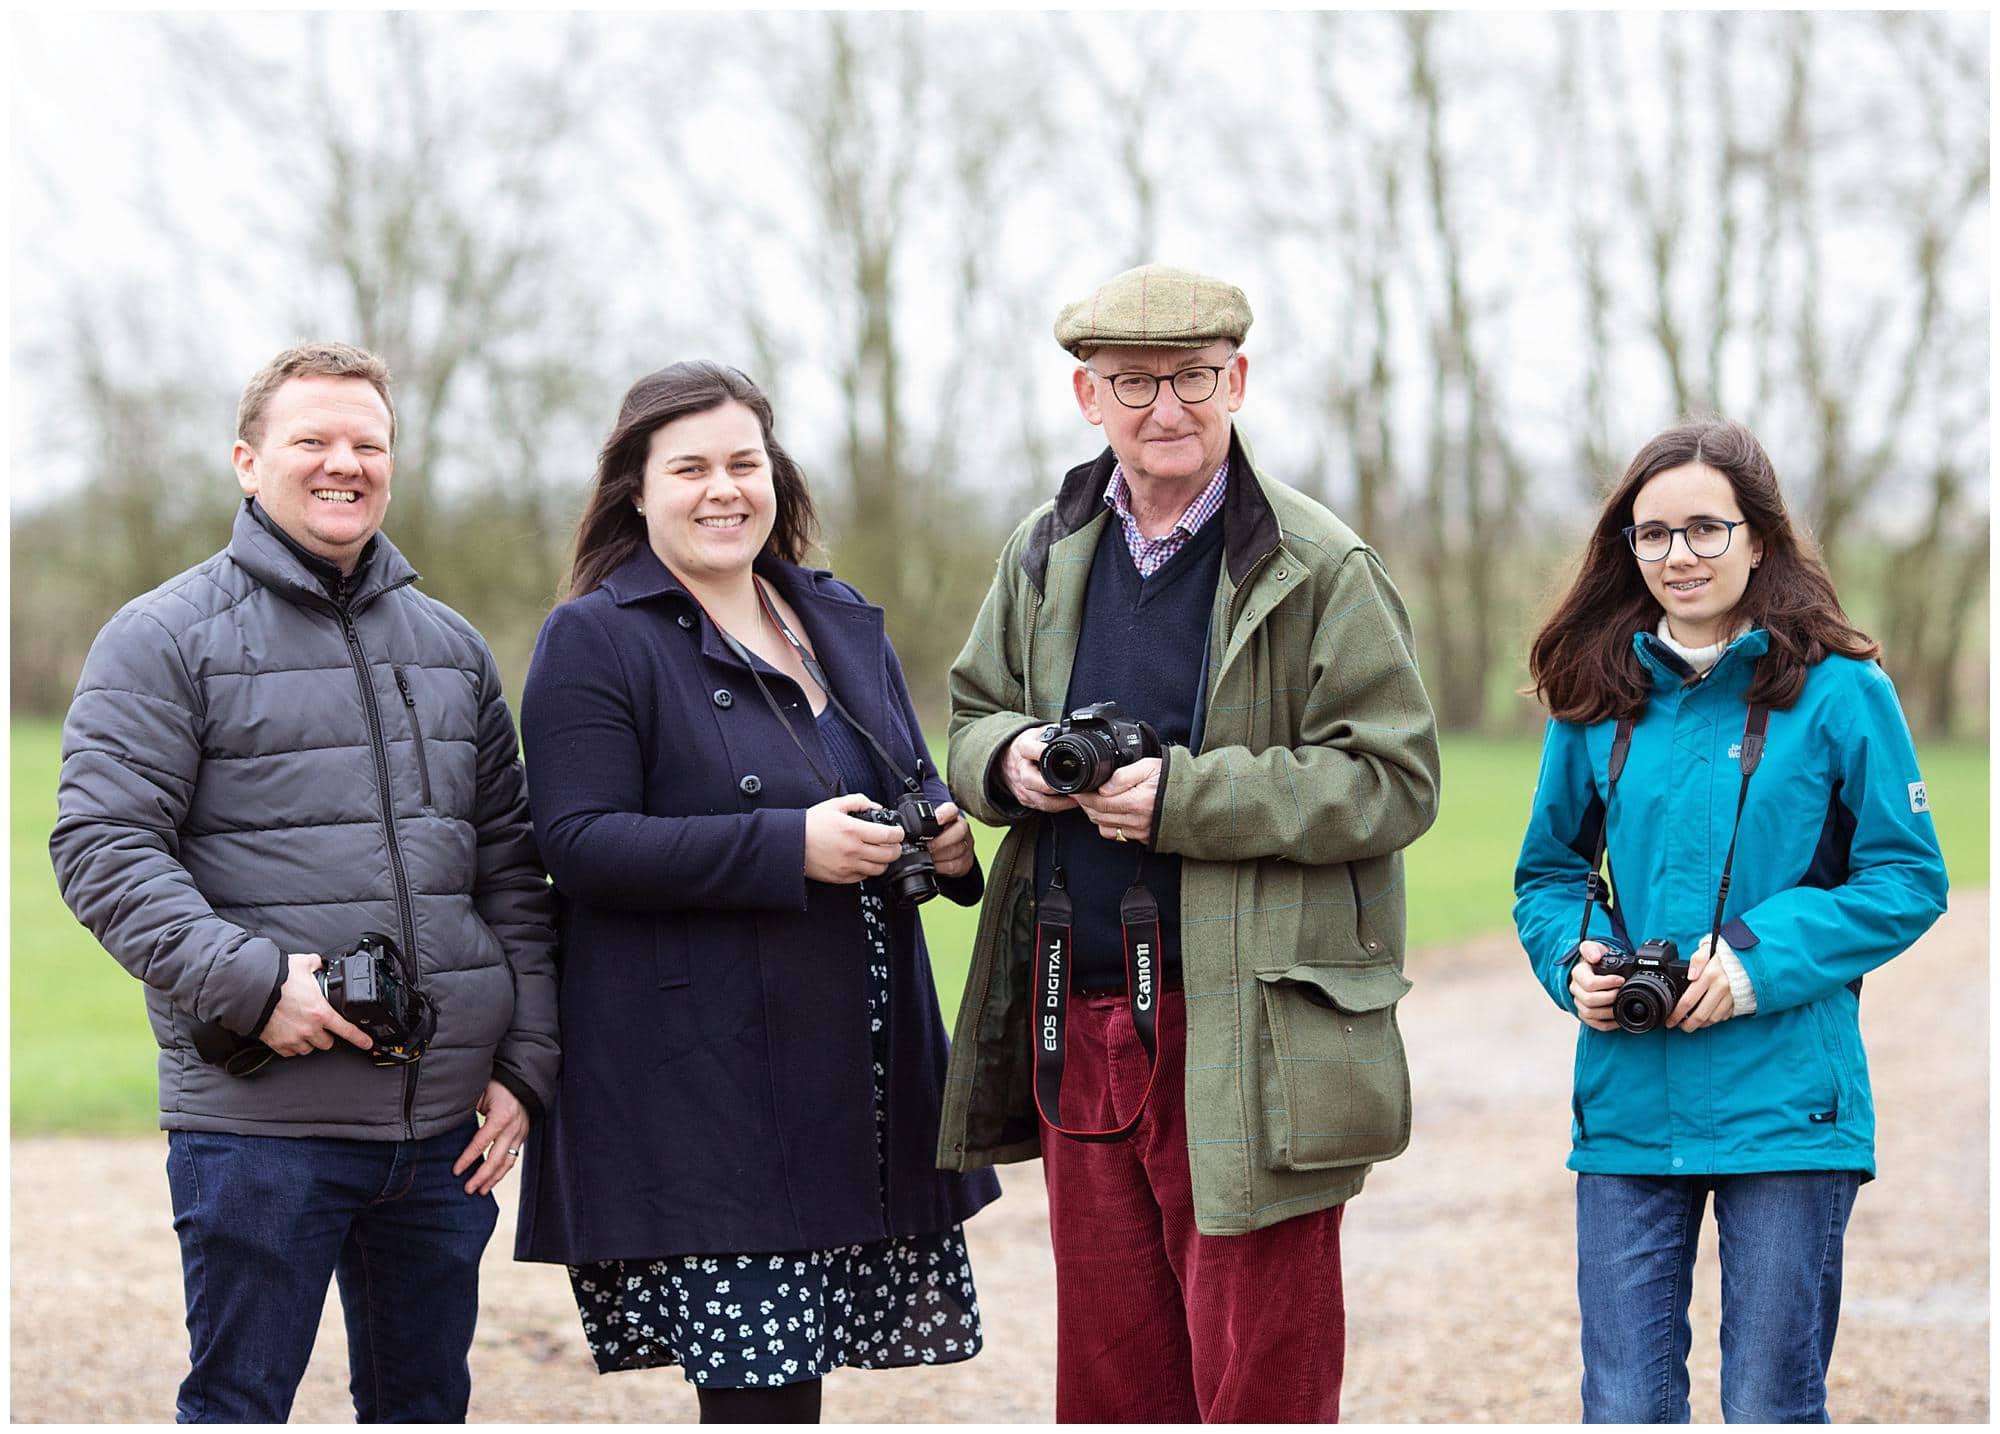 Four Photographers holding their camera's during a Beginners Photography Workshop in Stoke By Clare, Suffolk